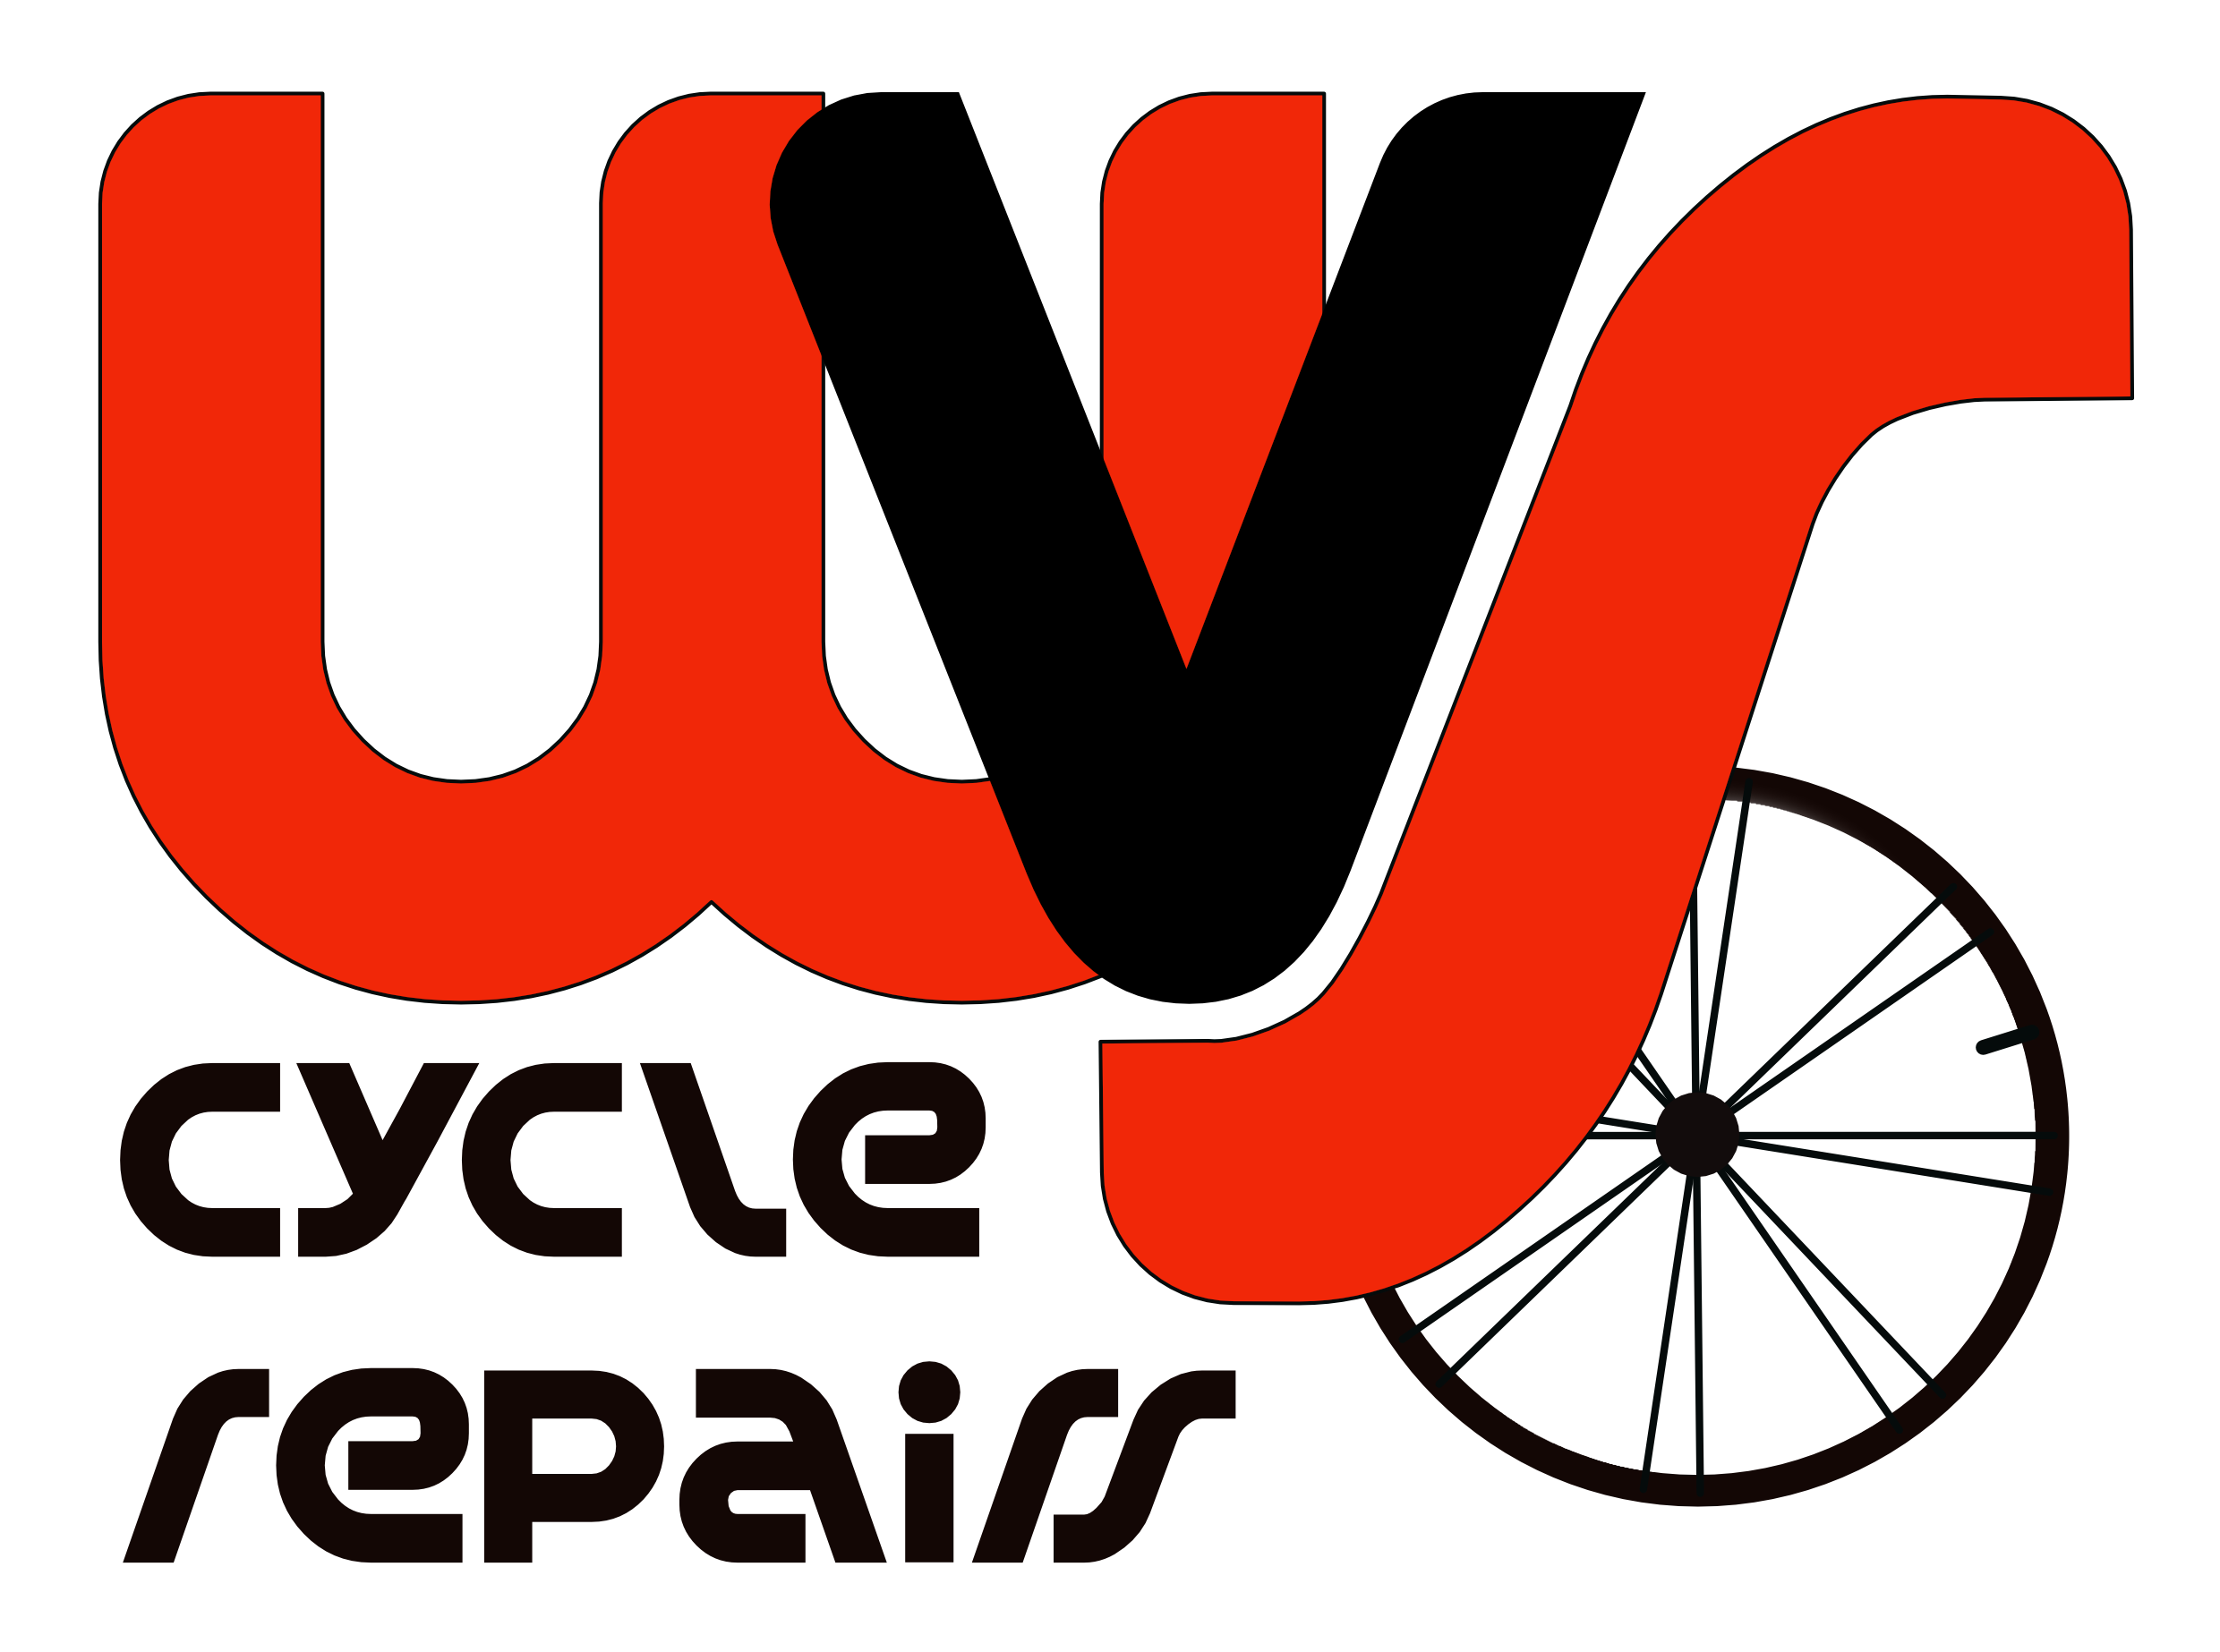 Bicycle repairs and bicycle service in Whitchurch, Wrexham and surrounding areas